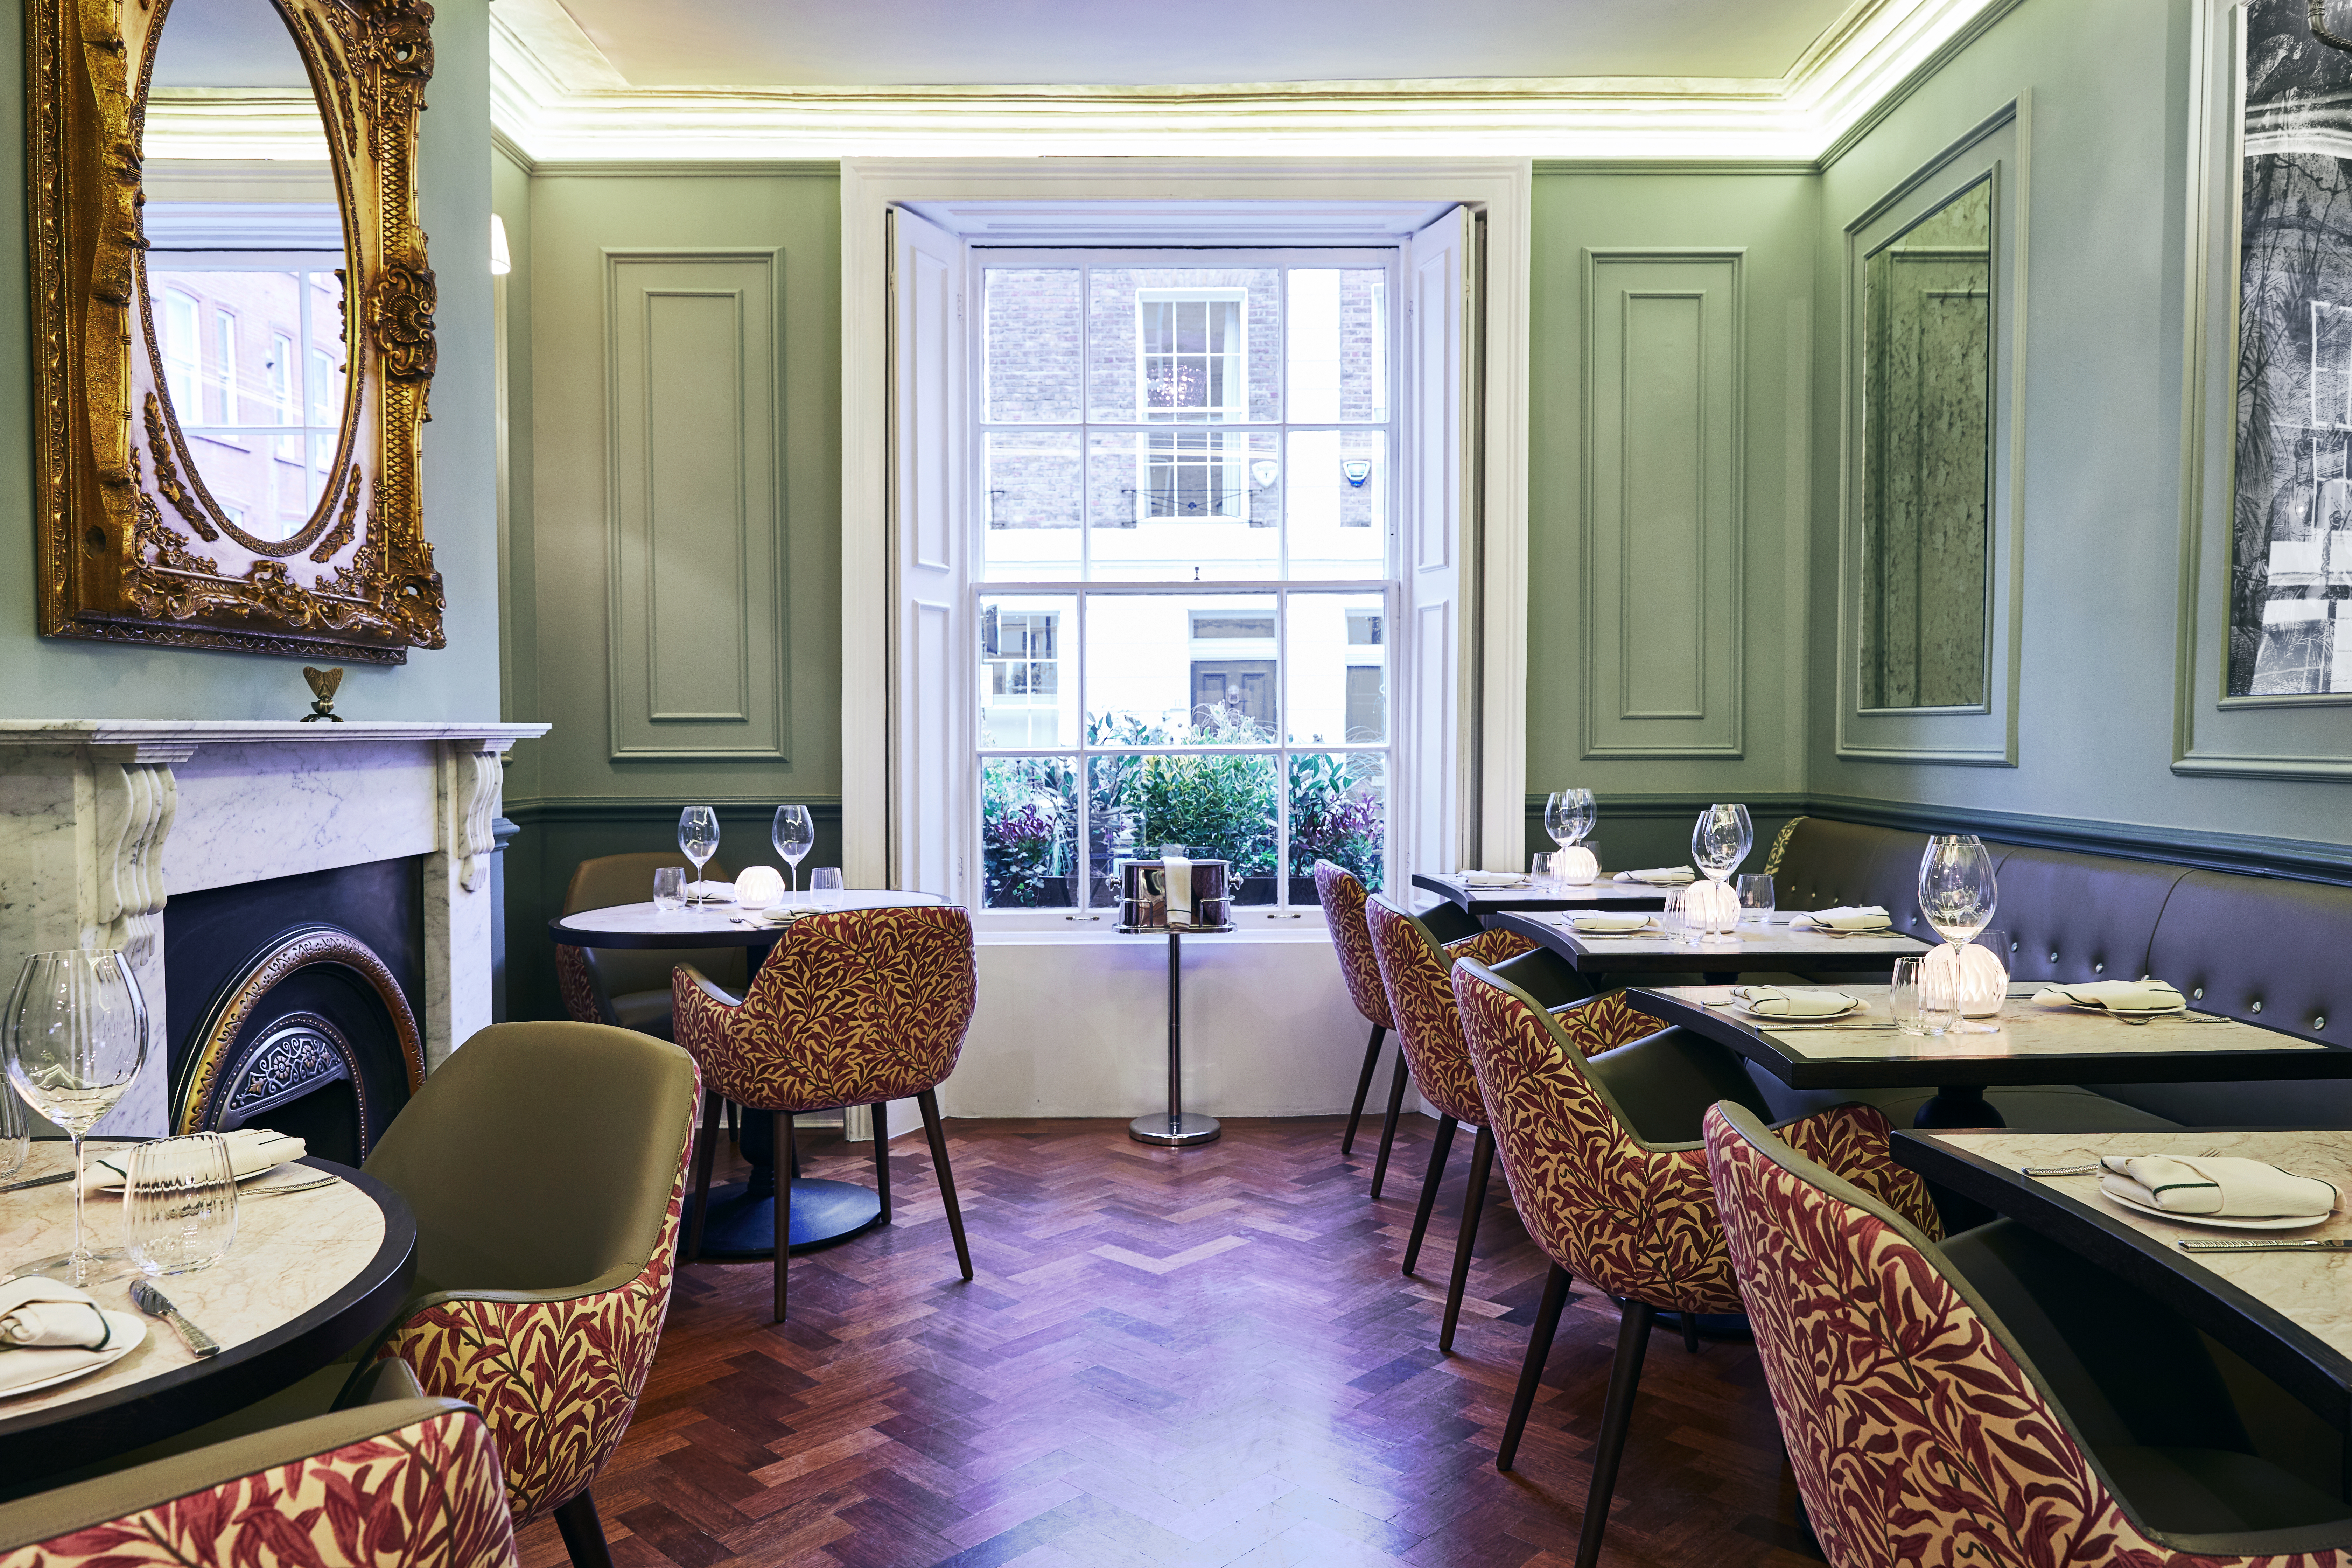 Near Sloane Square in Chelsea, Kutir is London's newest Indian fine-dining restaurant hoping to win Michelin stars